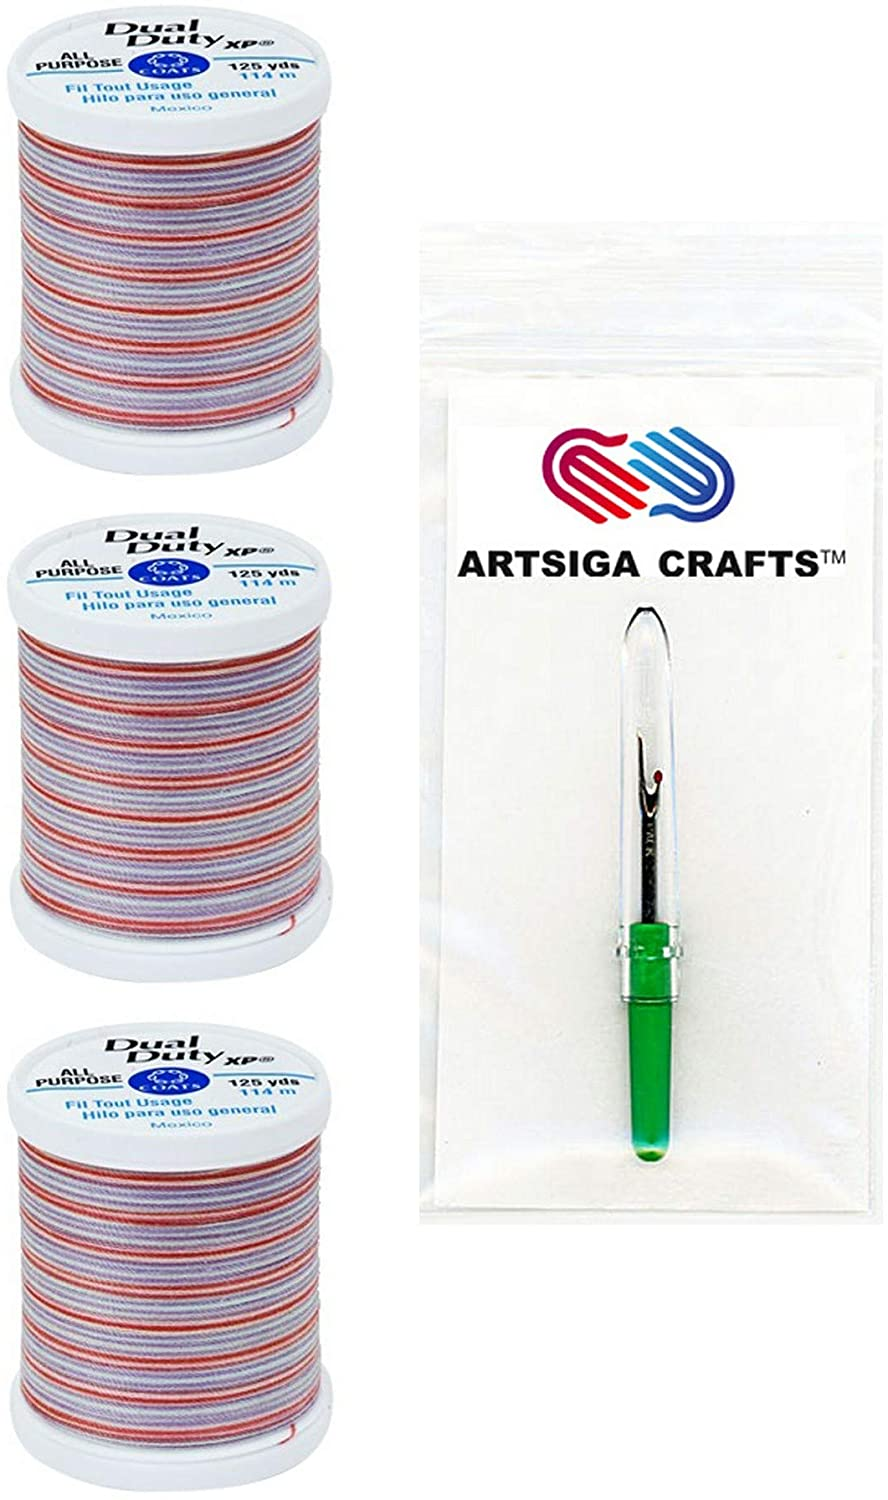 Coats & Clark Sewing Thread Dual Duty XP General Purpose Poly Thread 125 Yards (3-Pack) Sherbet Bundle with 1 Artsiga Crafts Seam Ripper S900-9314-3P